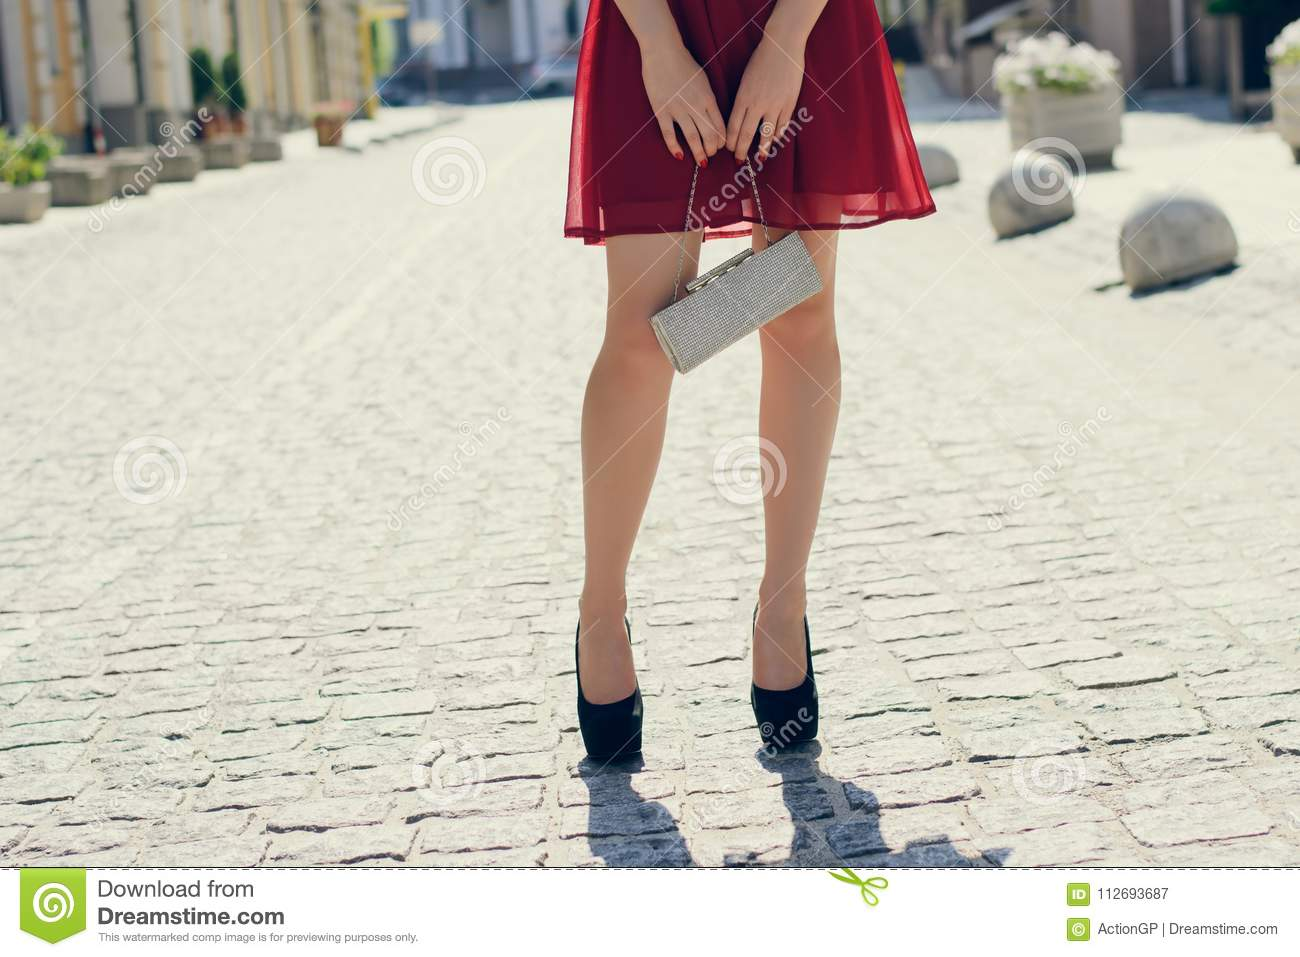 Charming Pretty Lady In Red Dress, With Bag In Hands, In